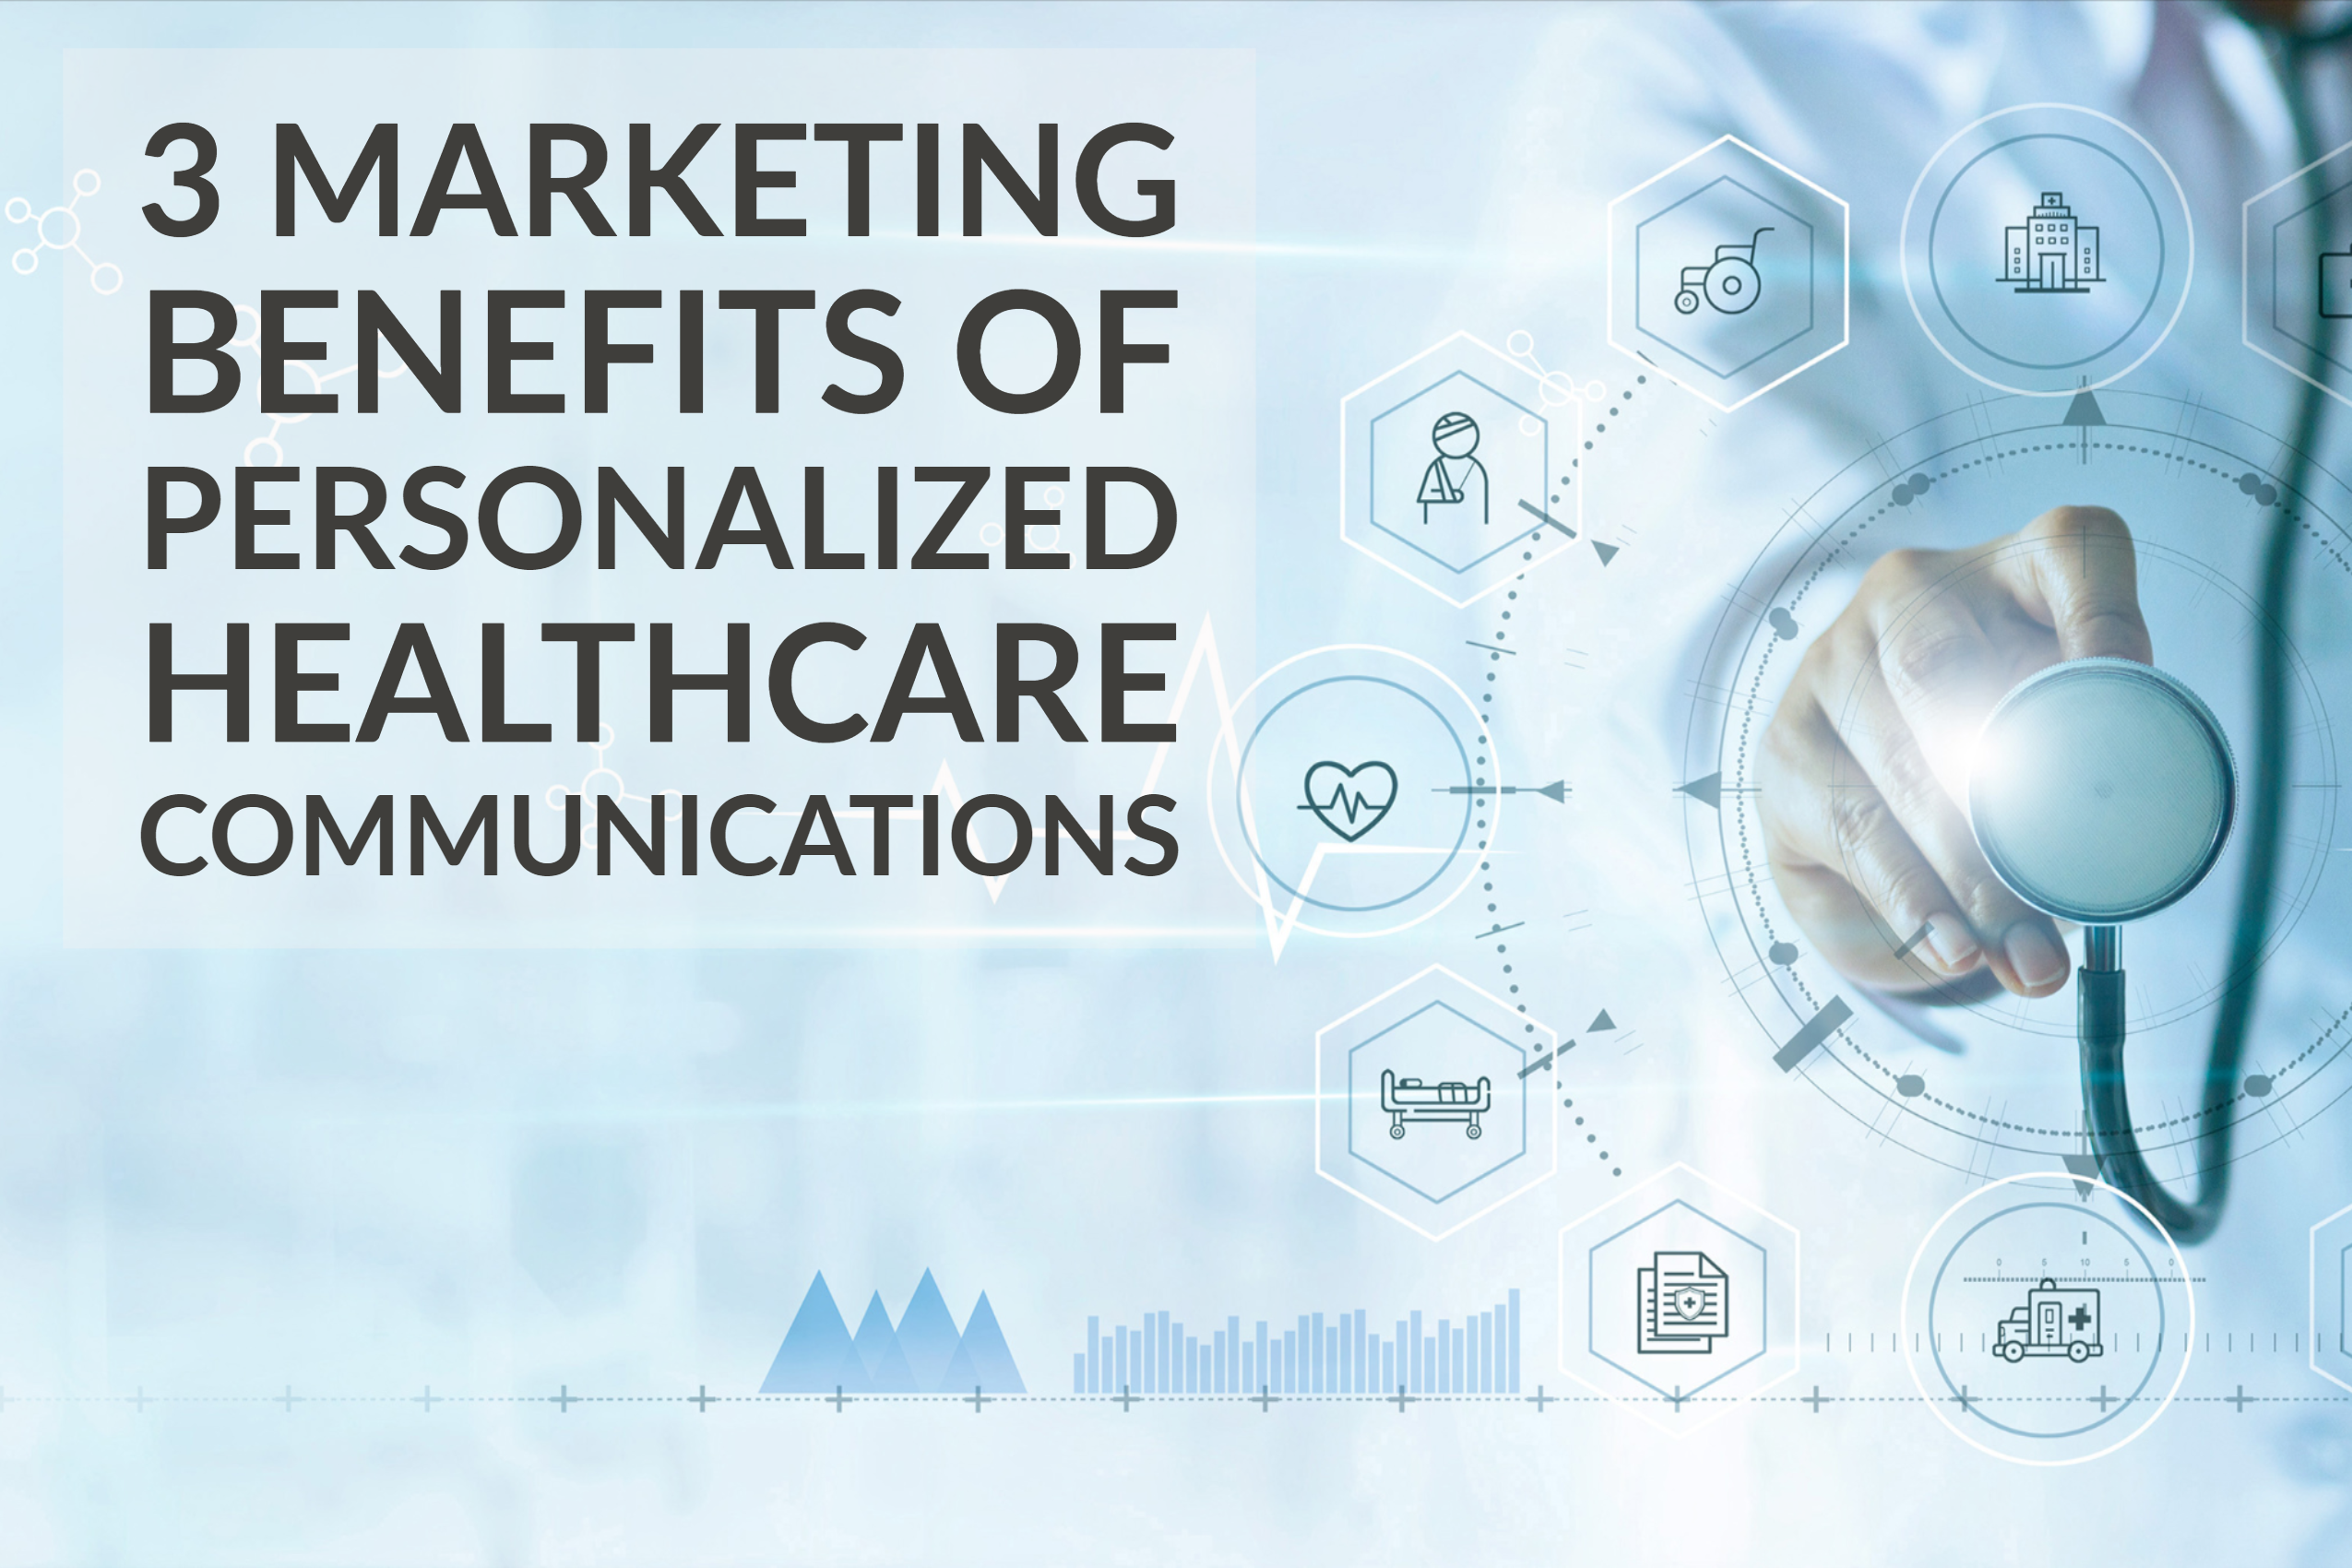 3 Marketing Benefits of Personalized Healthcare Communications